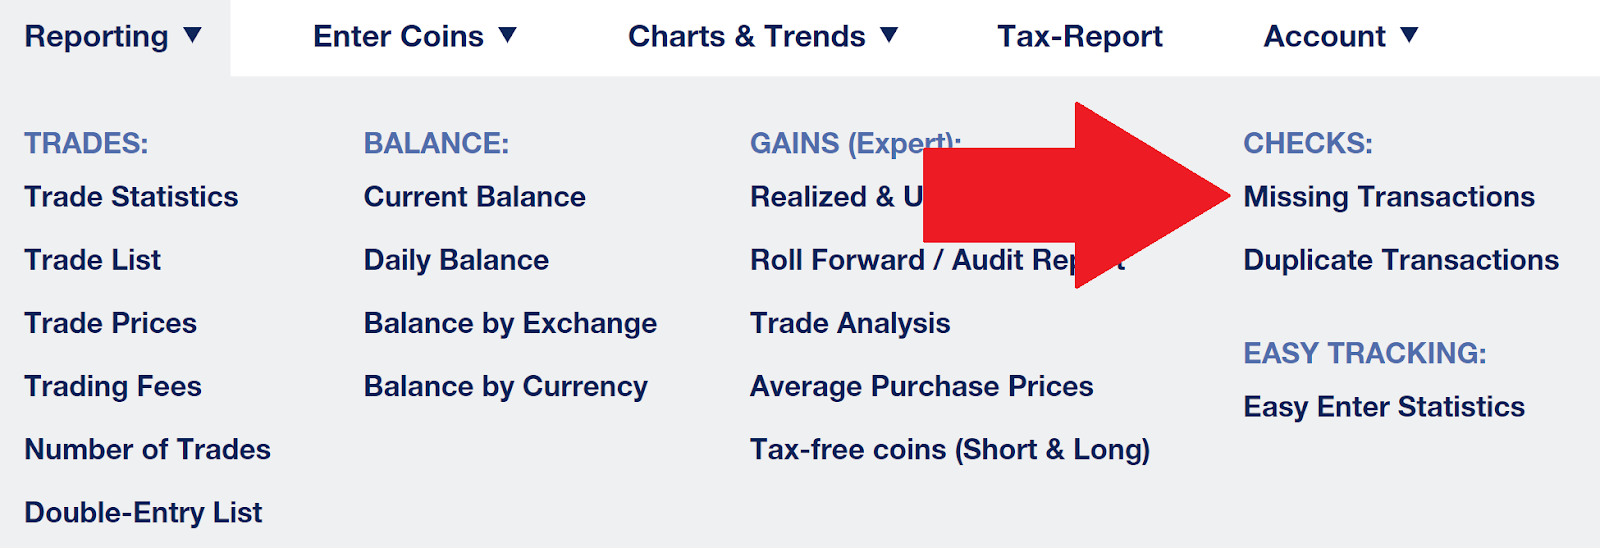 Crypto Tax Calculator CoinTracking info Rolls Out Ease-of